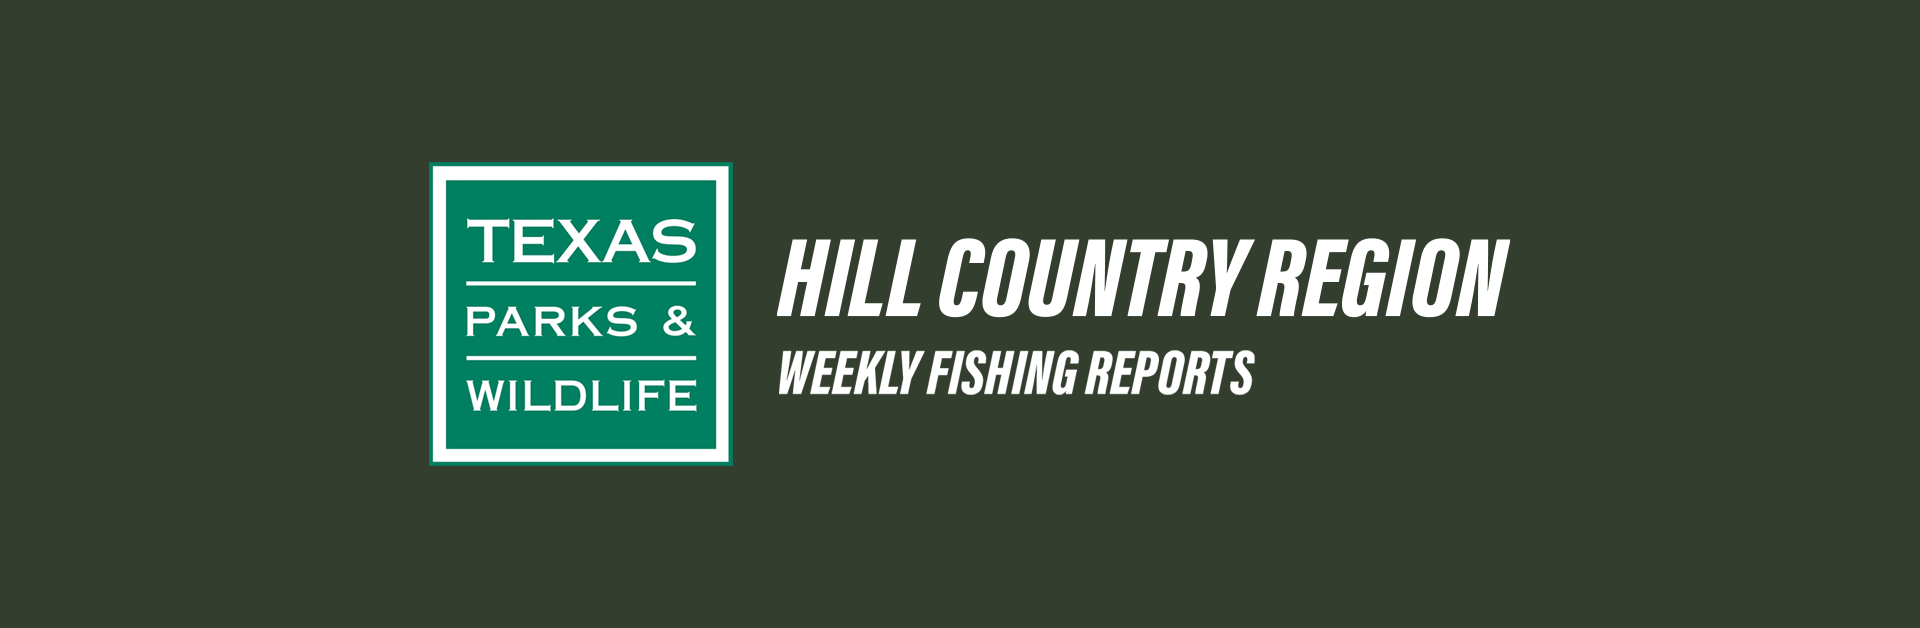 HILL COUNTRY REGION | WEEK OF 12/4/19